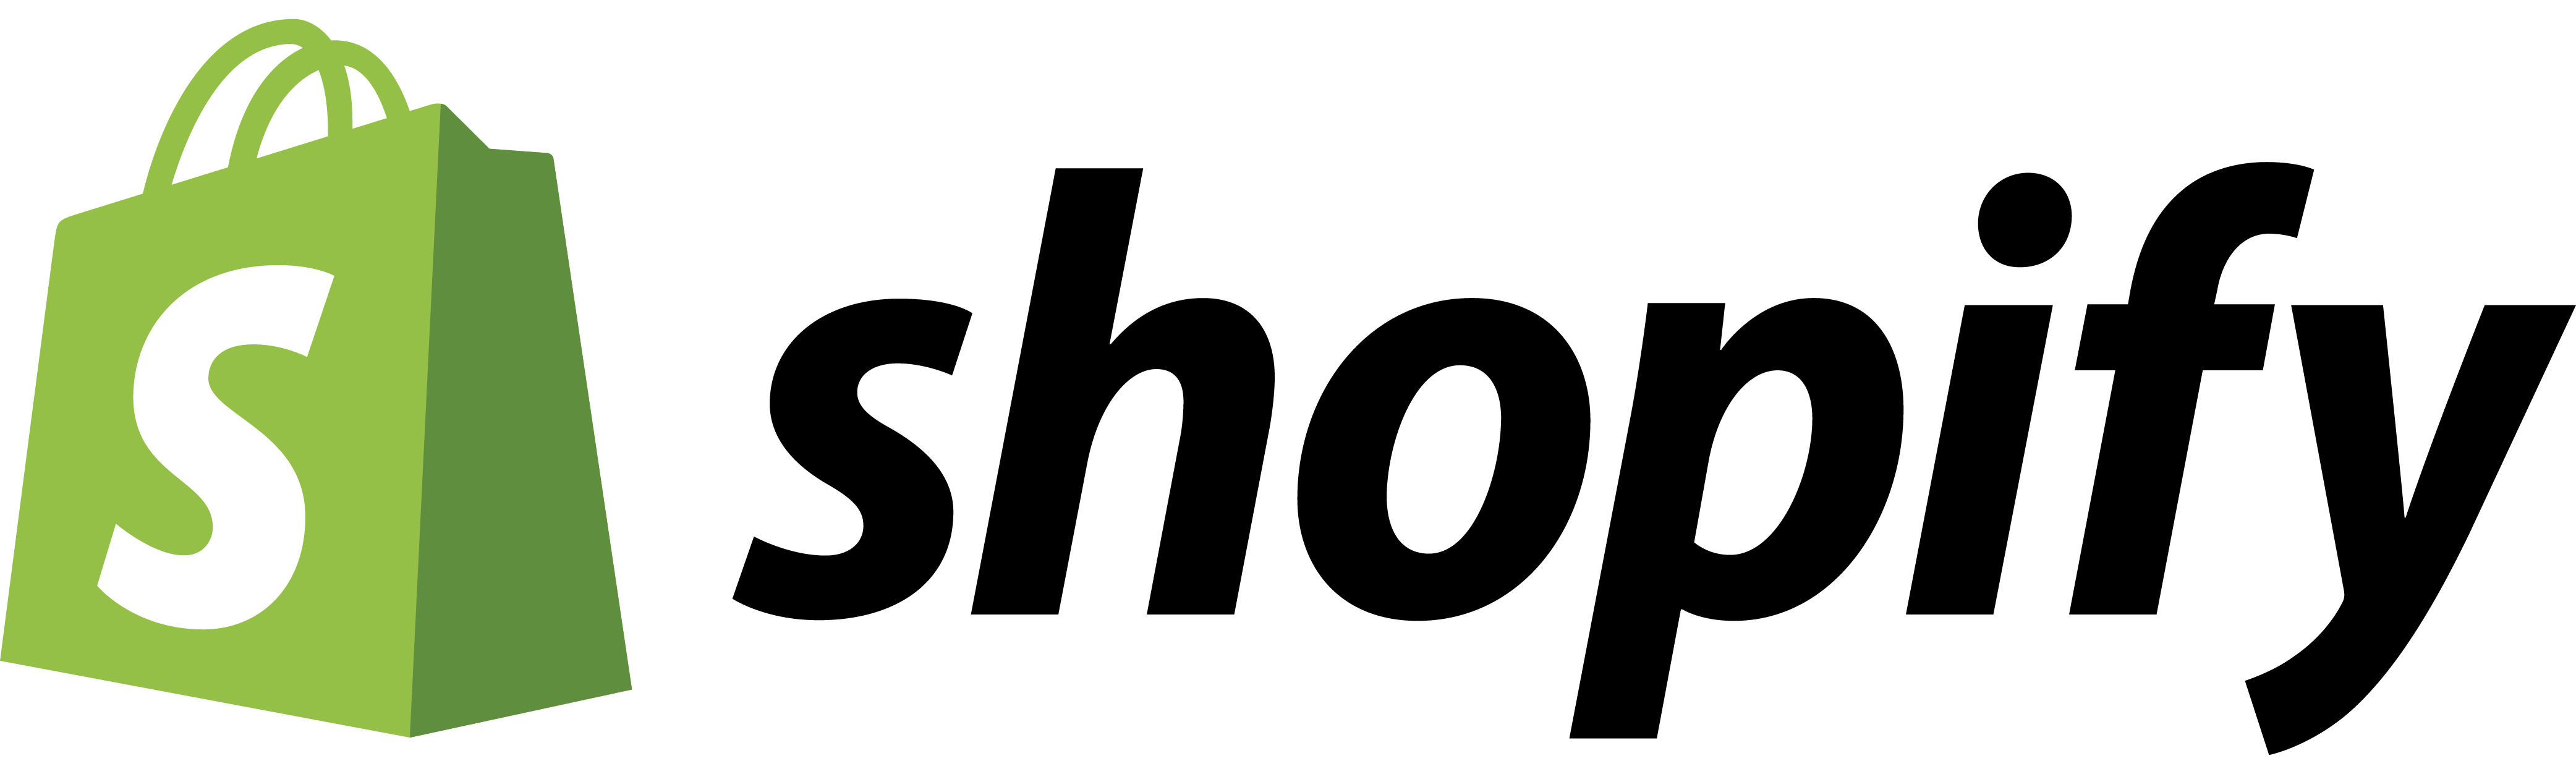 Adeva developers worked with Shopify